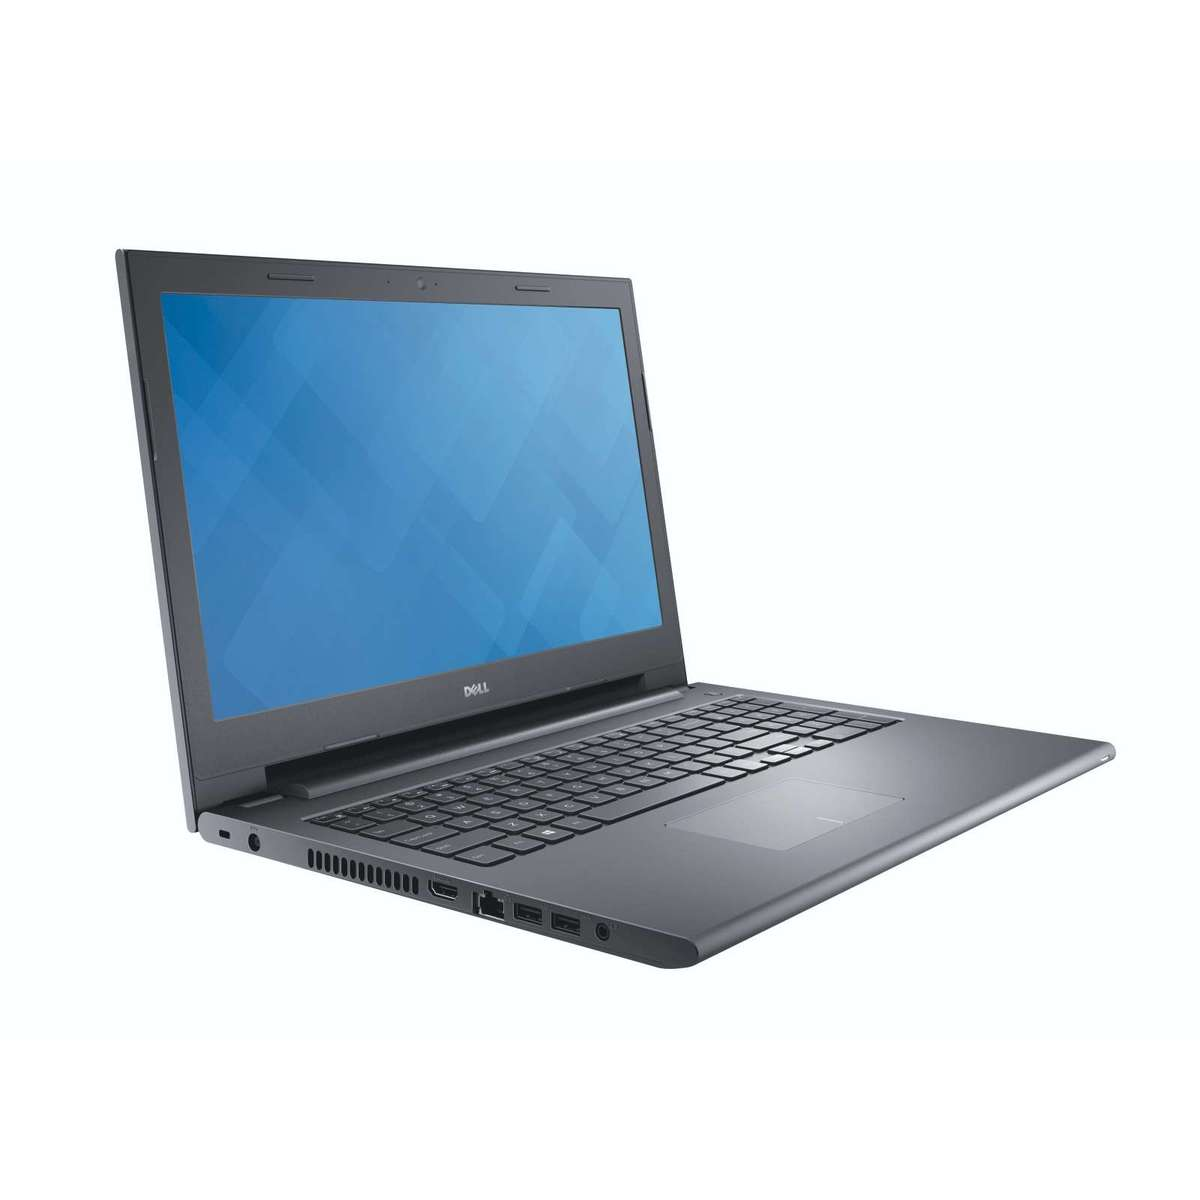 Laptop dell inpirion 3542 core i5 ổ cứng 500gb